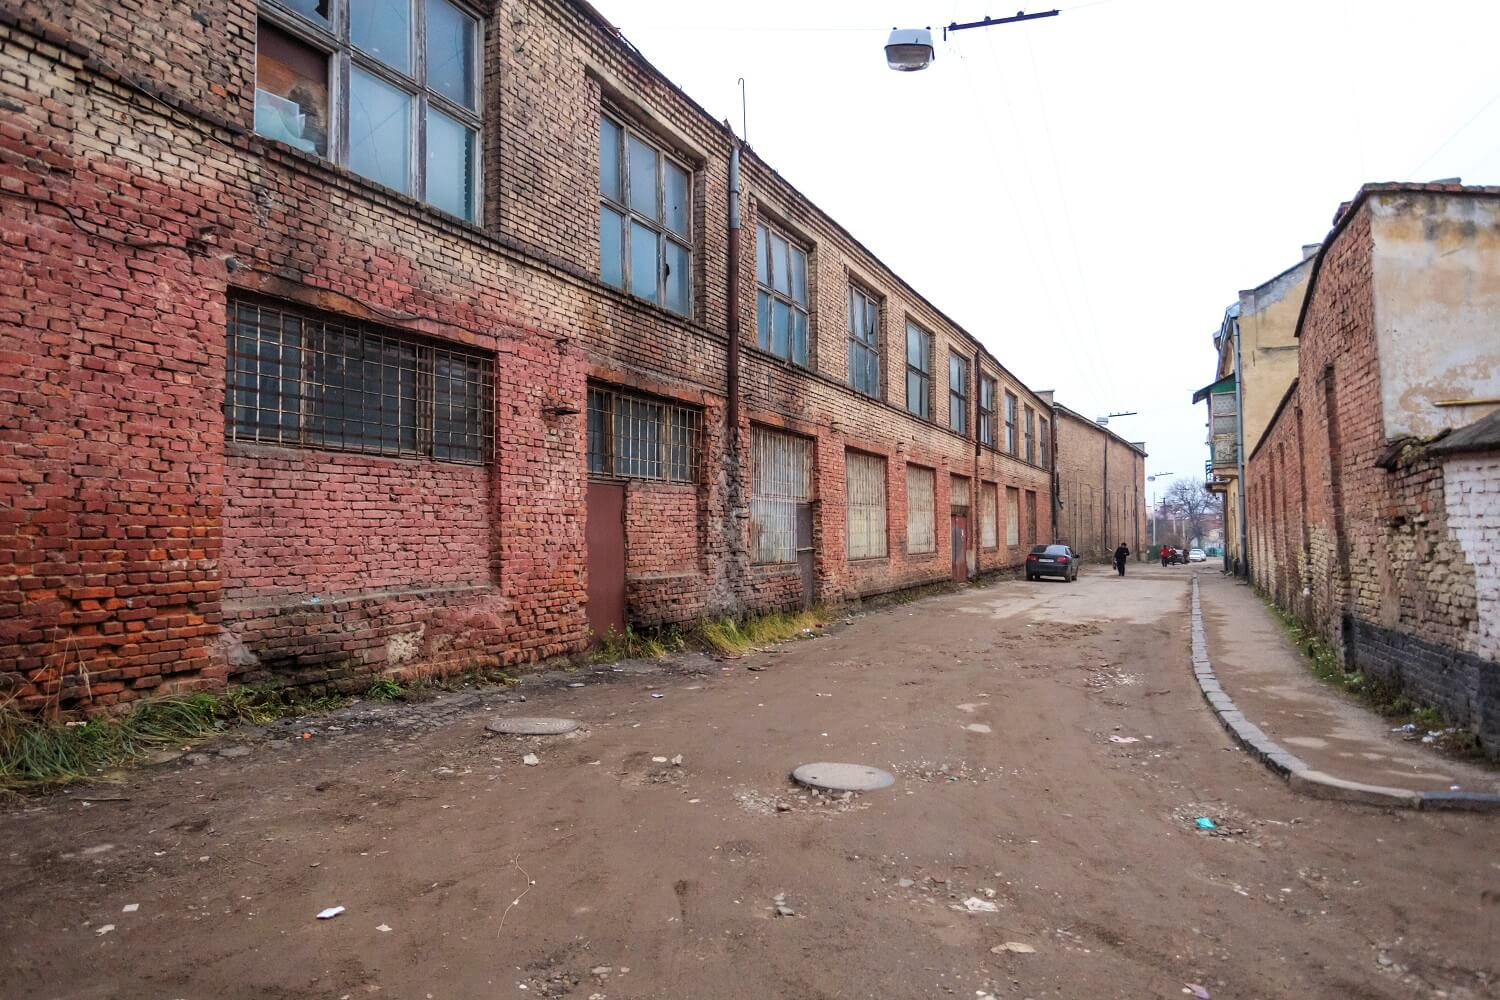 Former industrial buildings behind the townhouse, on vul. Zustrichna/Photo courtesy of Nazarii Parkhomyk, 2015